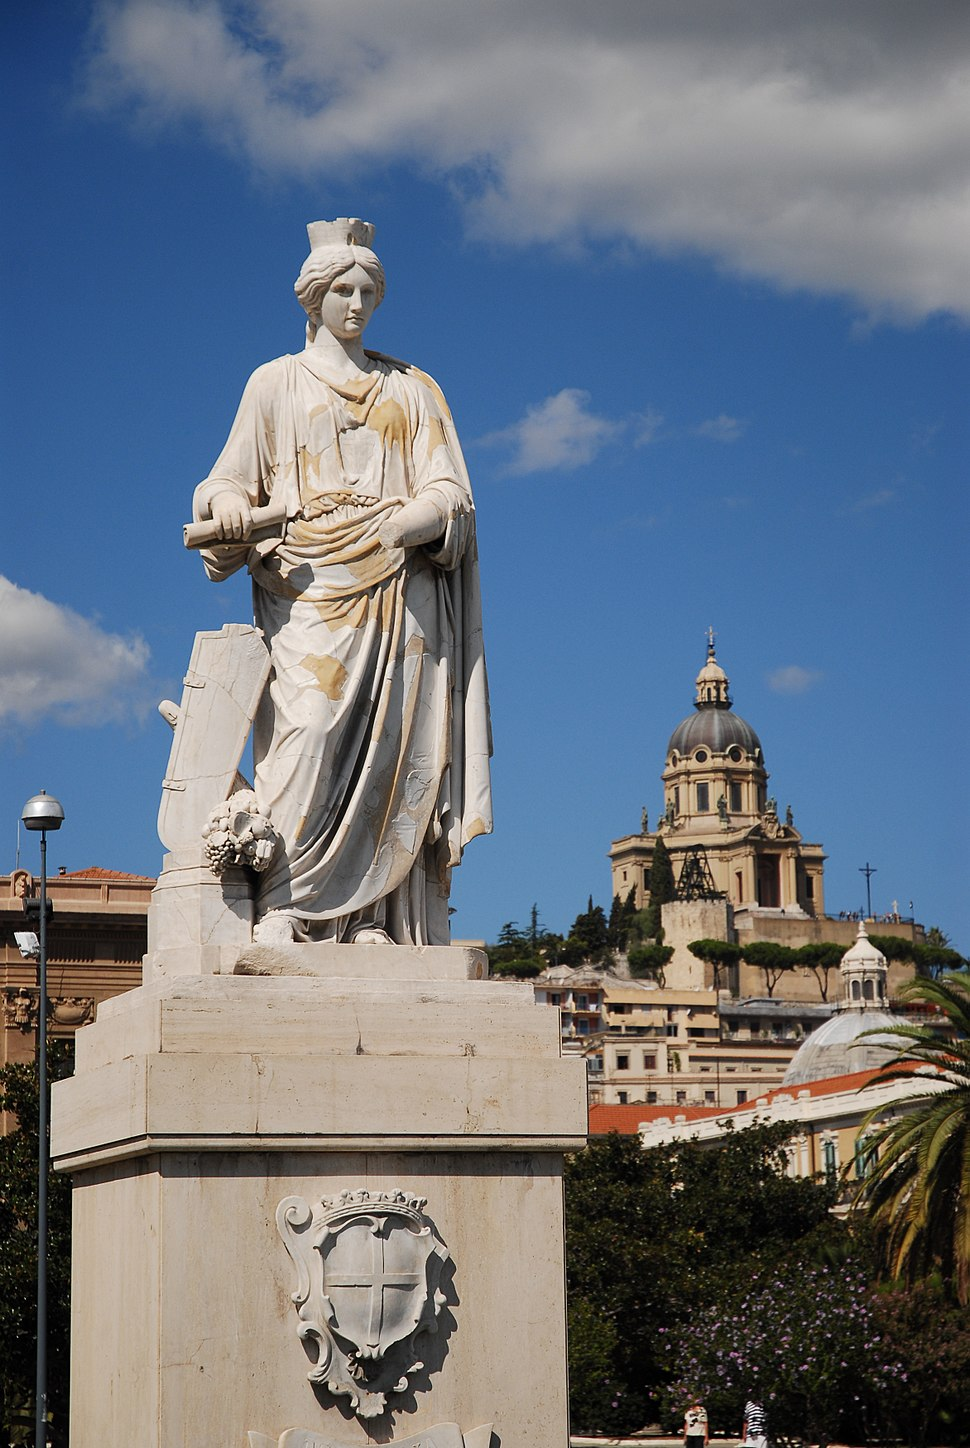 The Statue of Messina (Dedicated to Ferdinand II of Bourbon, by sculptor G. Prinzi). Messina, Island of Sicily, Italy, Southern Europe